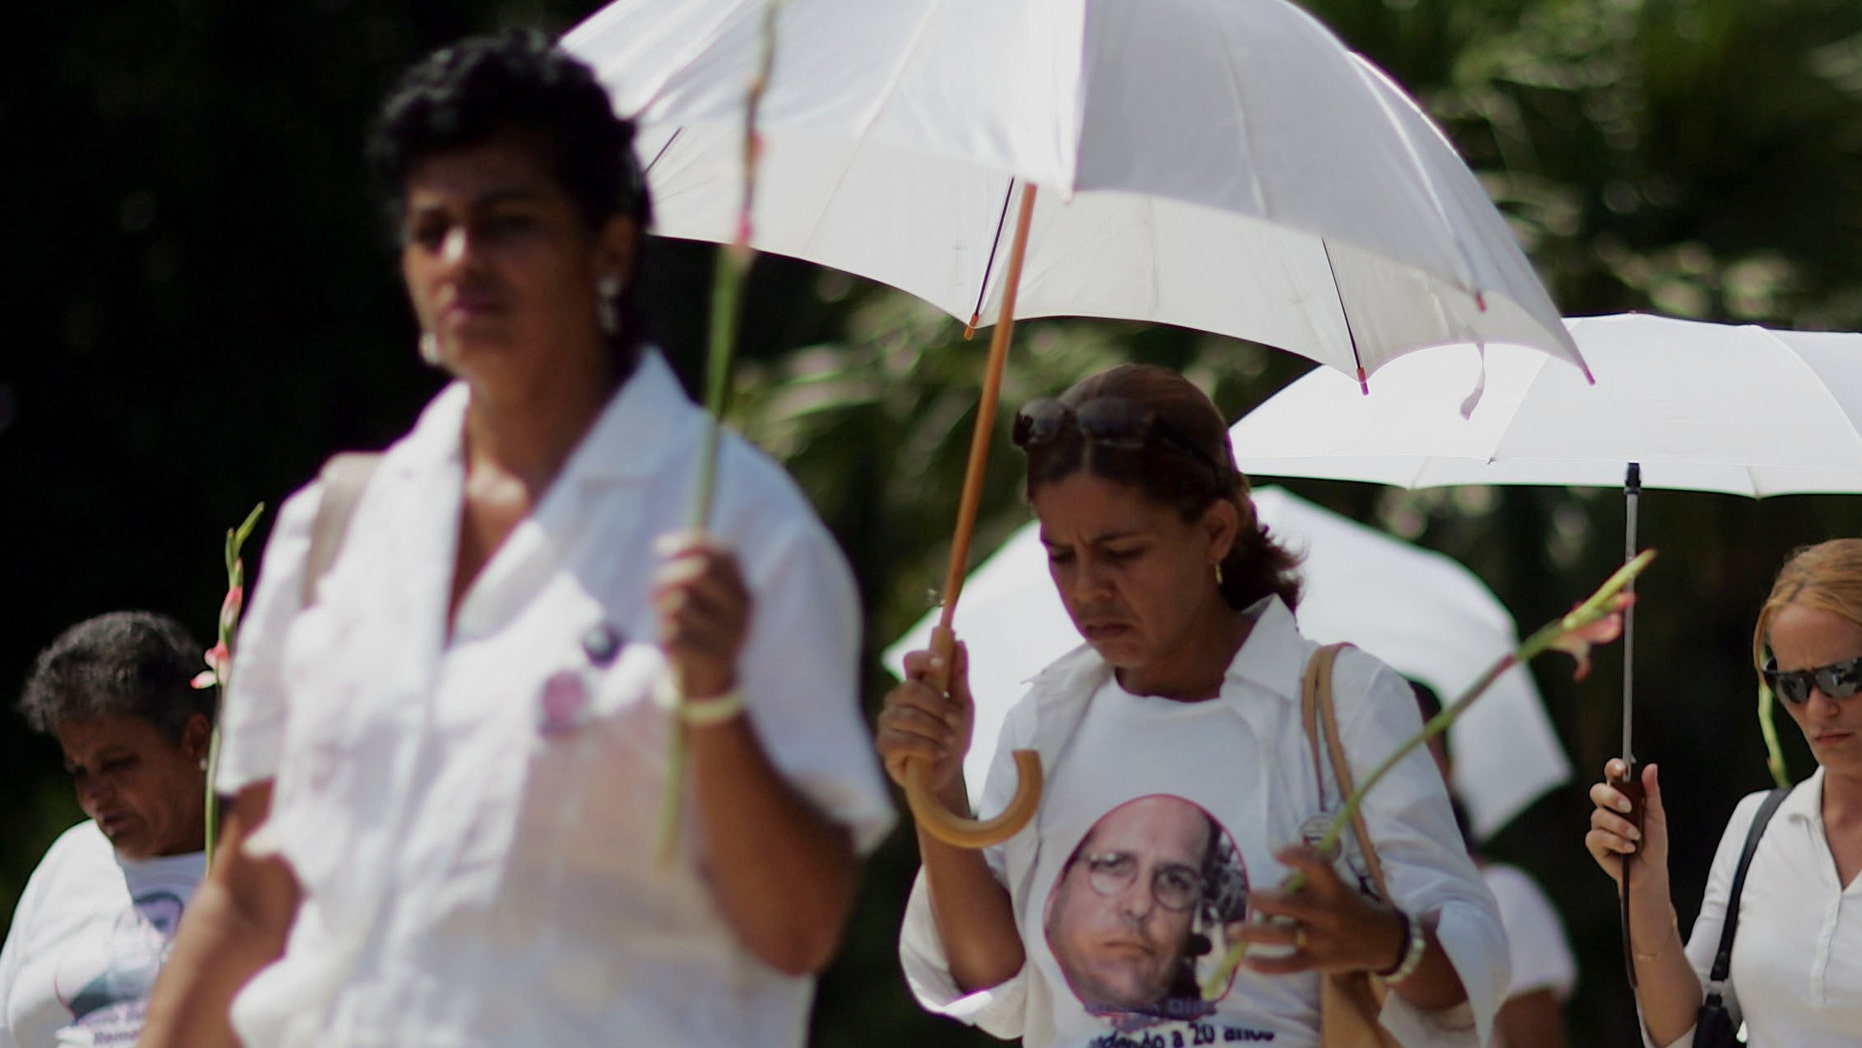 HAVANA - SEPTEMBER 17: Members of the Women in White movement of wives and mothers of imprisoned dissidents march together September 17, 2006 in Havana, Cuba. The Women in White began in 2004 after dissidents were arrested and jailed in the crackdown in 2003. The island nation still waits for the first appearance of President Fidel Castro among the general public after he turned over power to his brother, Raul Castro, following surgery in July.  (Photo by Joe Raedle/Getty Images)